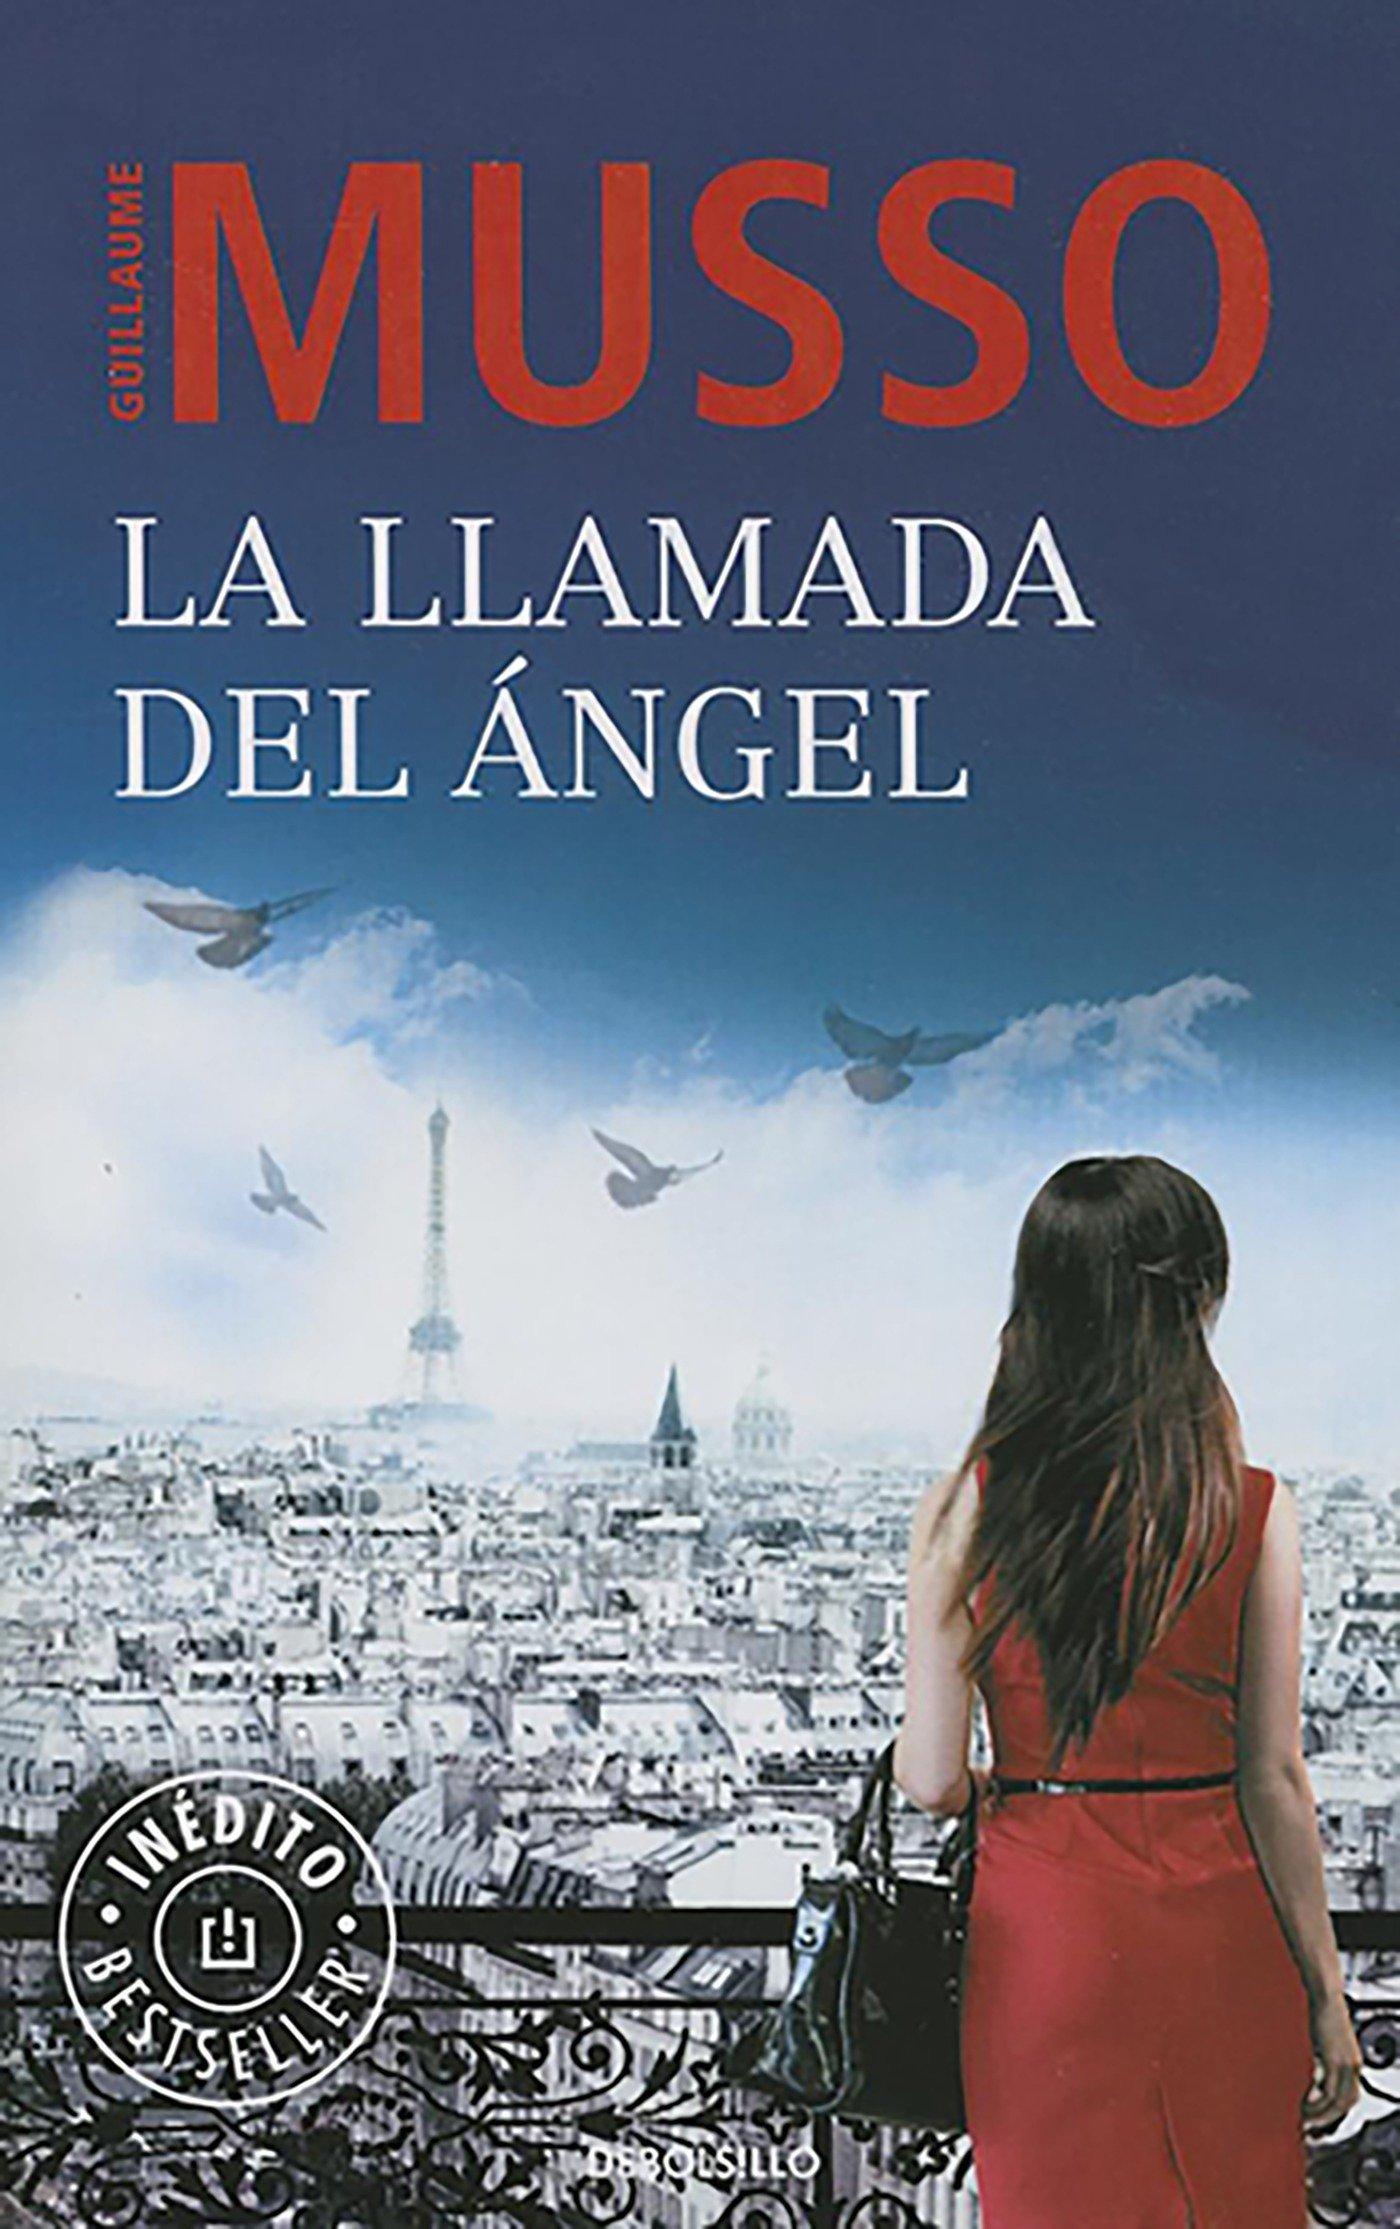 La llamada del ángel (Best Seller): Amazon.es: Musso, Guillaume ...